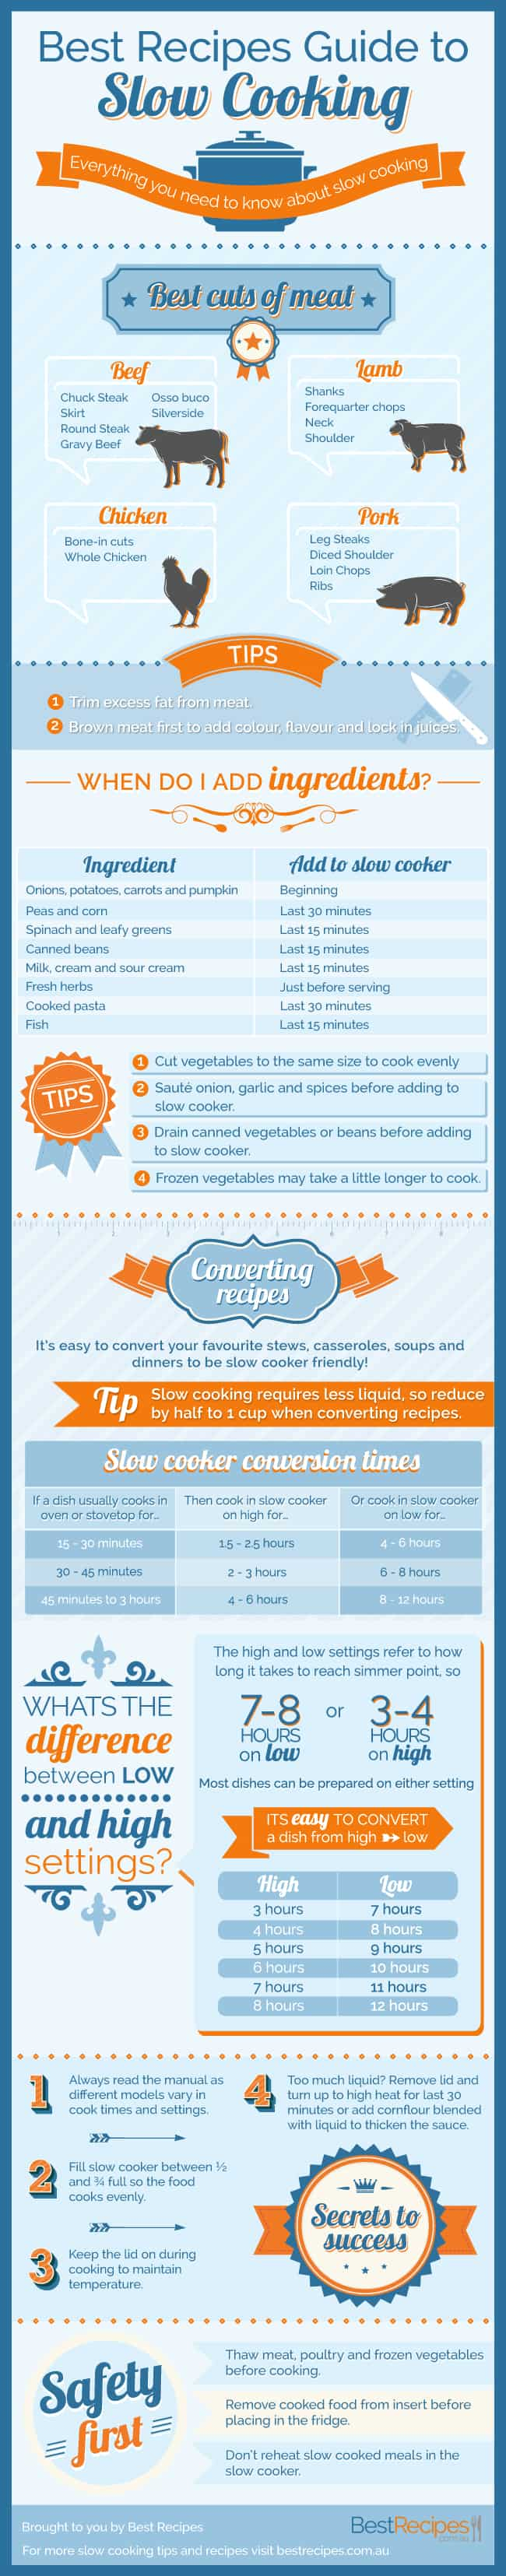 Slow Cooker Cooking Recipe Infographic